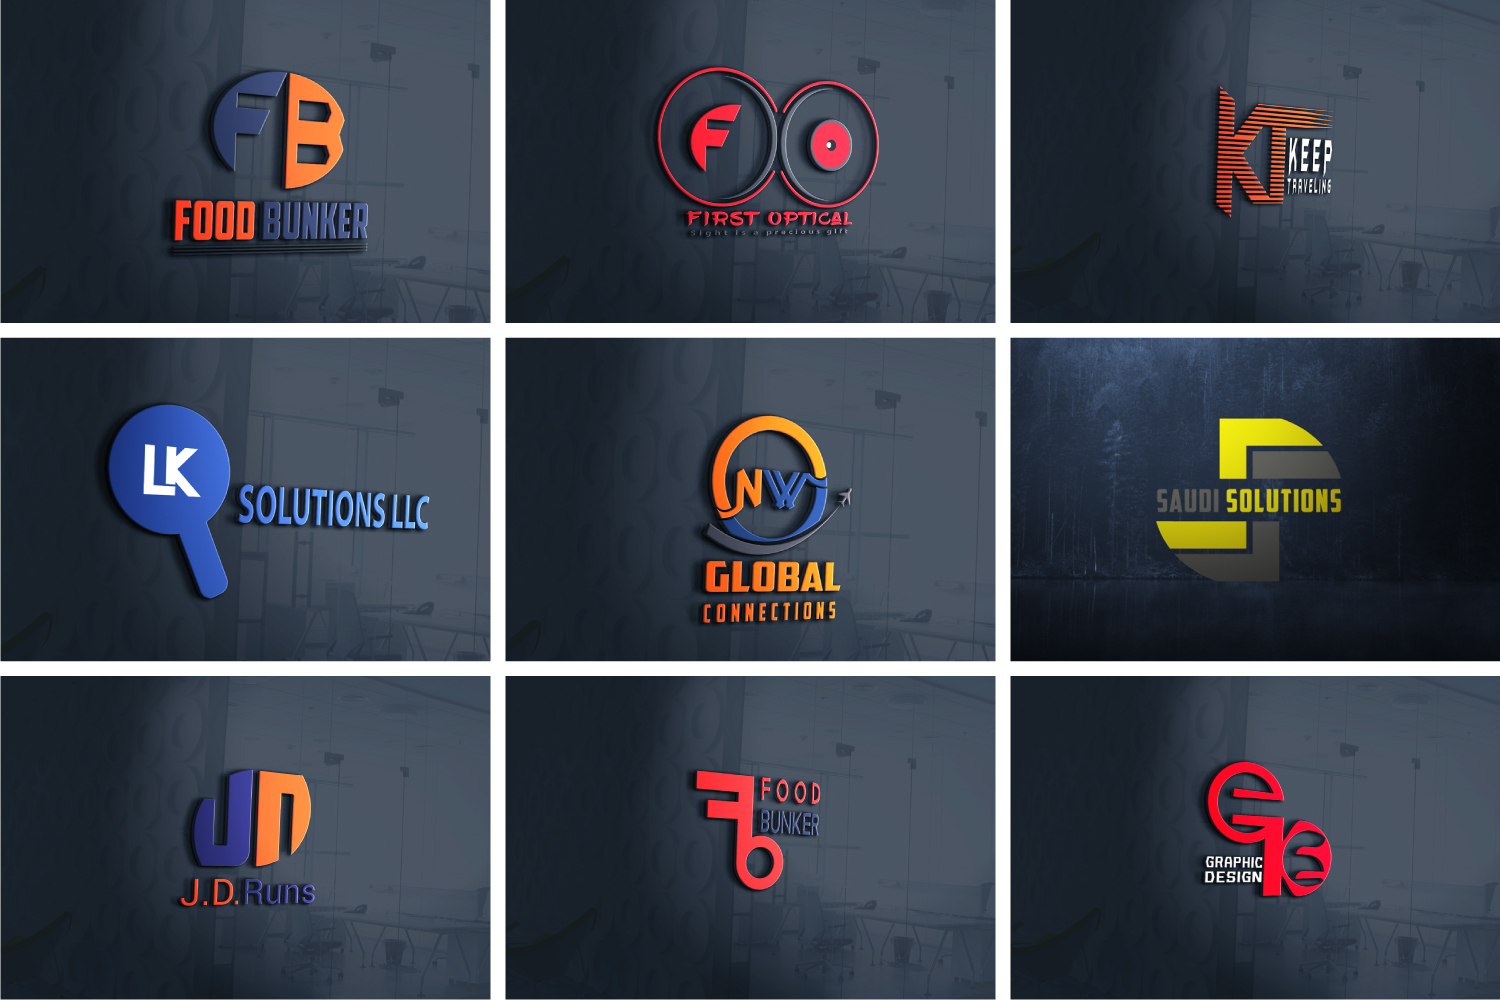 I will design business logo in 3 hours that will be modern and trendy